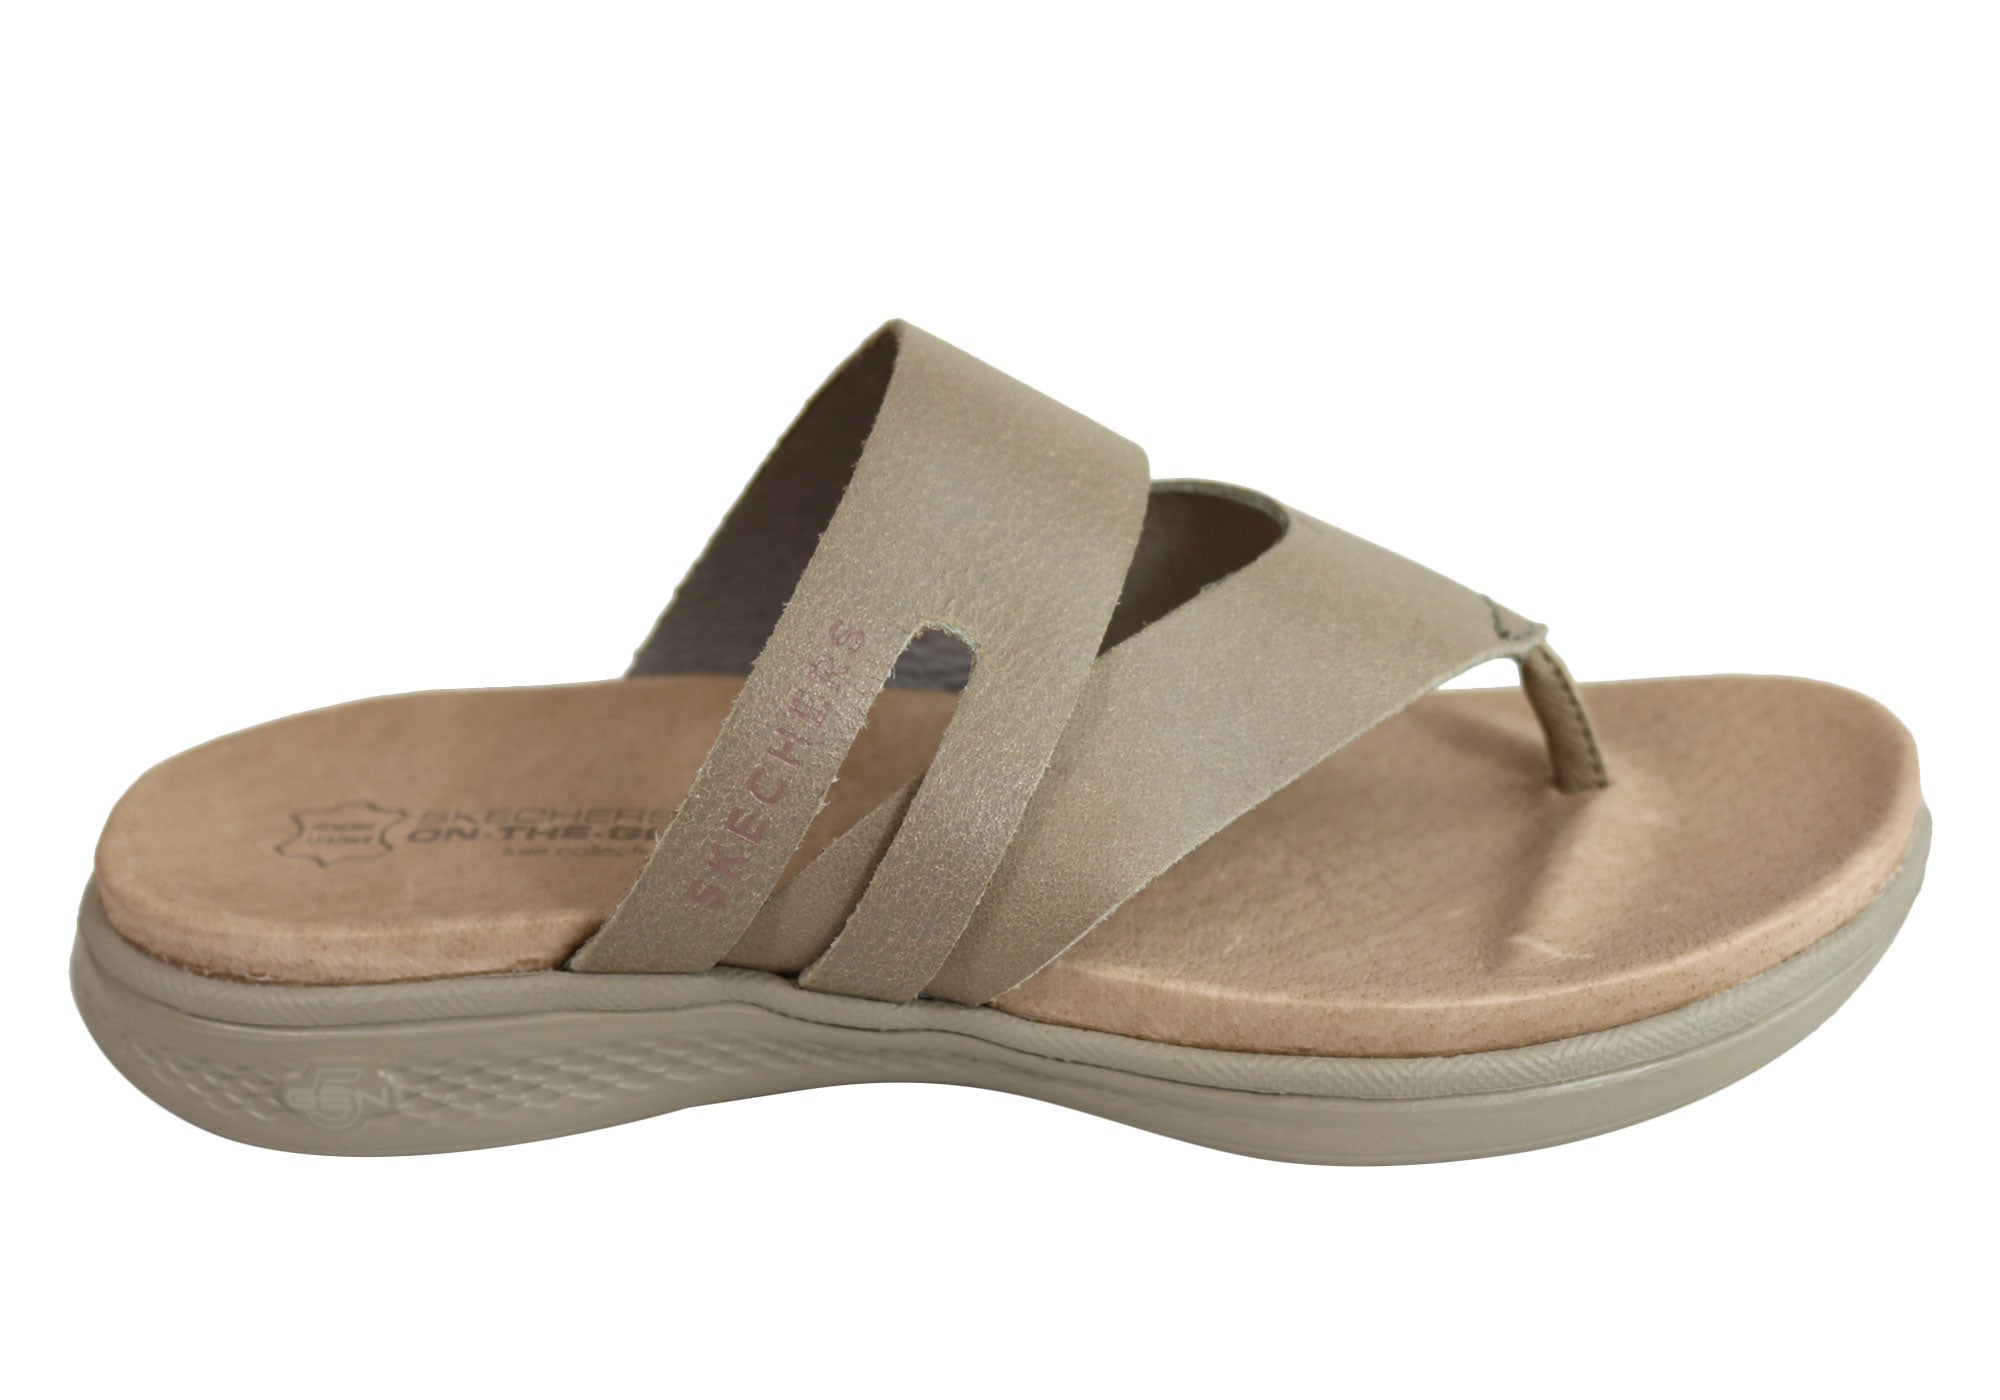 83c9c6af458d Home Skechers Womens On The Go Luxe Comfortable Leather Thongs Sandals.  Taupe ...